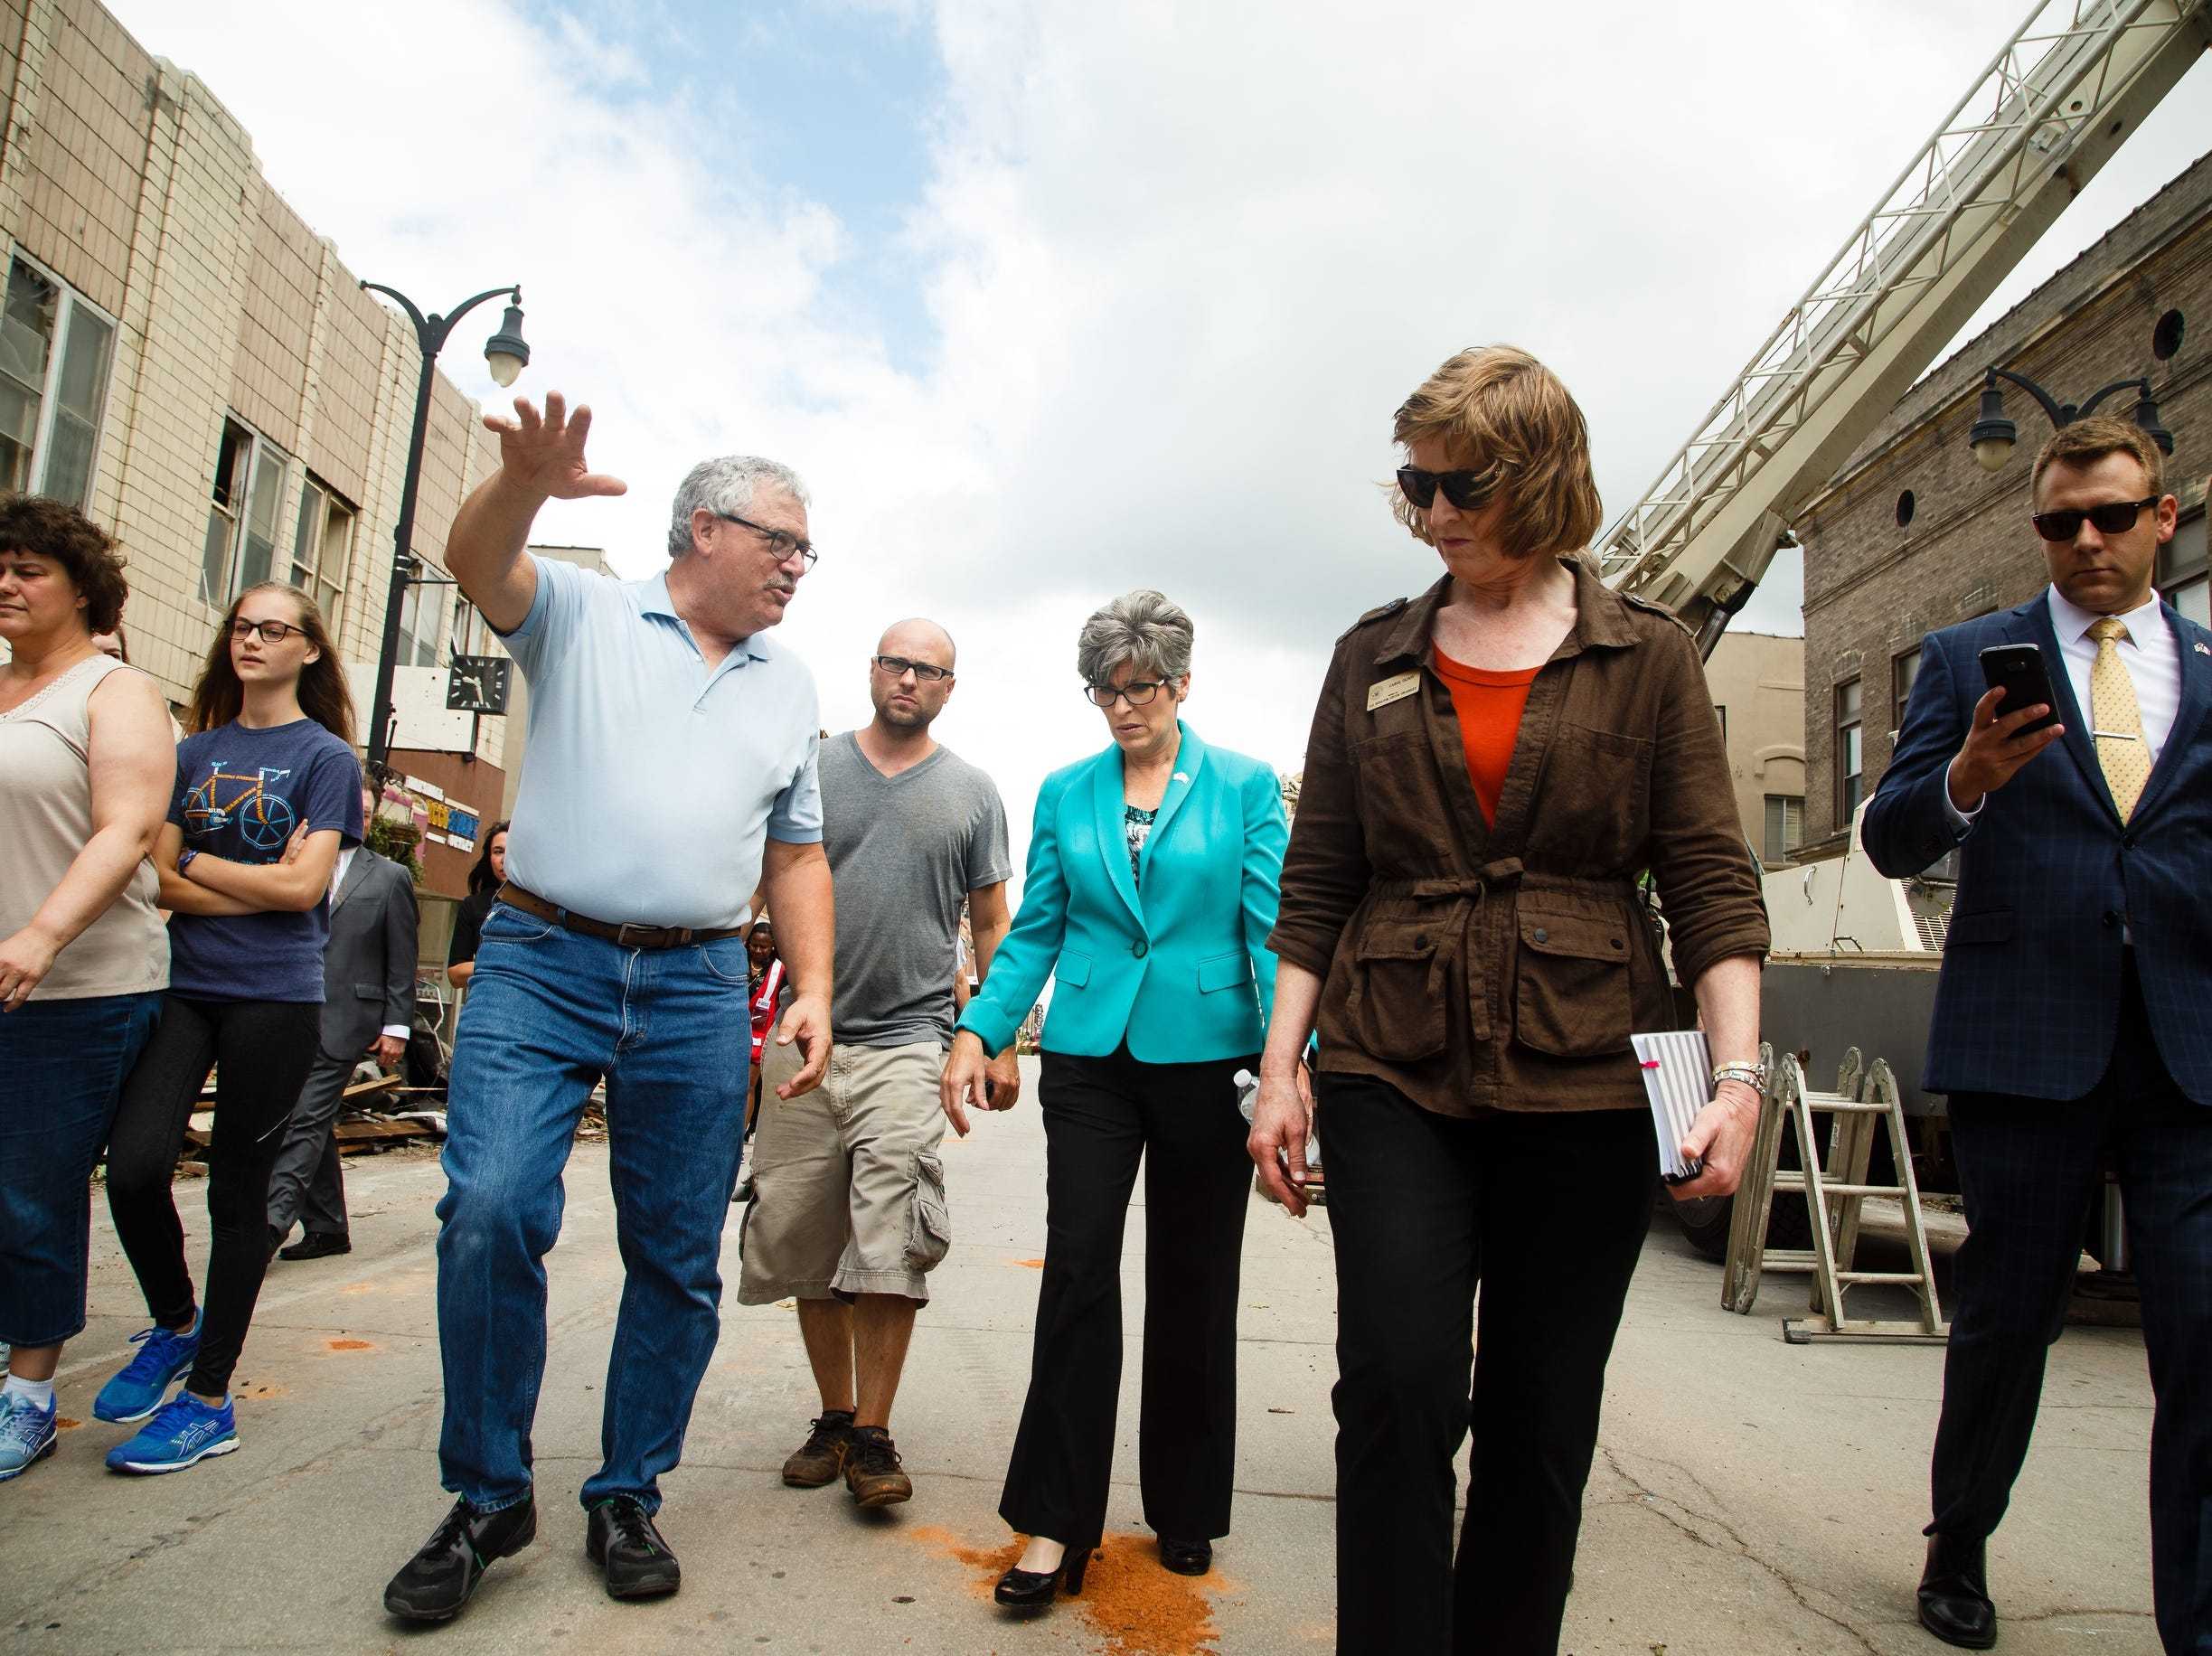 Sen. Joni Ernst tours the damage in Marshalltown on Friday, July 20, 2018. Yesterday, tornadoes ripped through central Iowa causing major damage but only minor injuries have been reported so far.